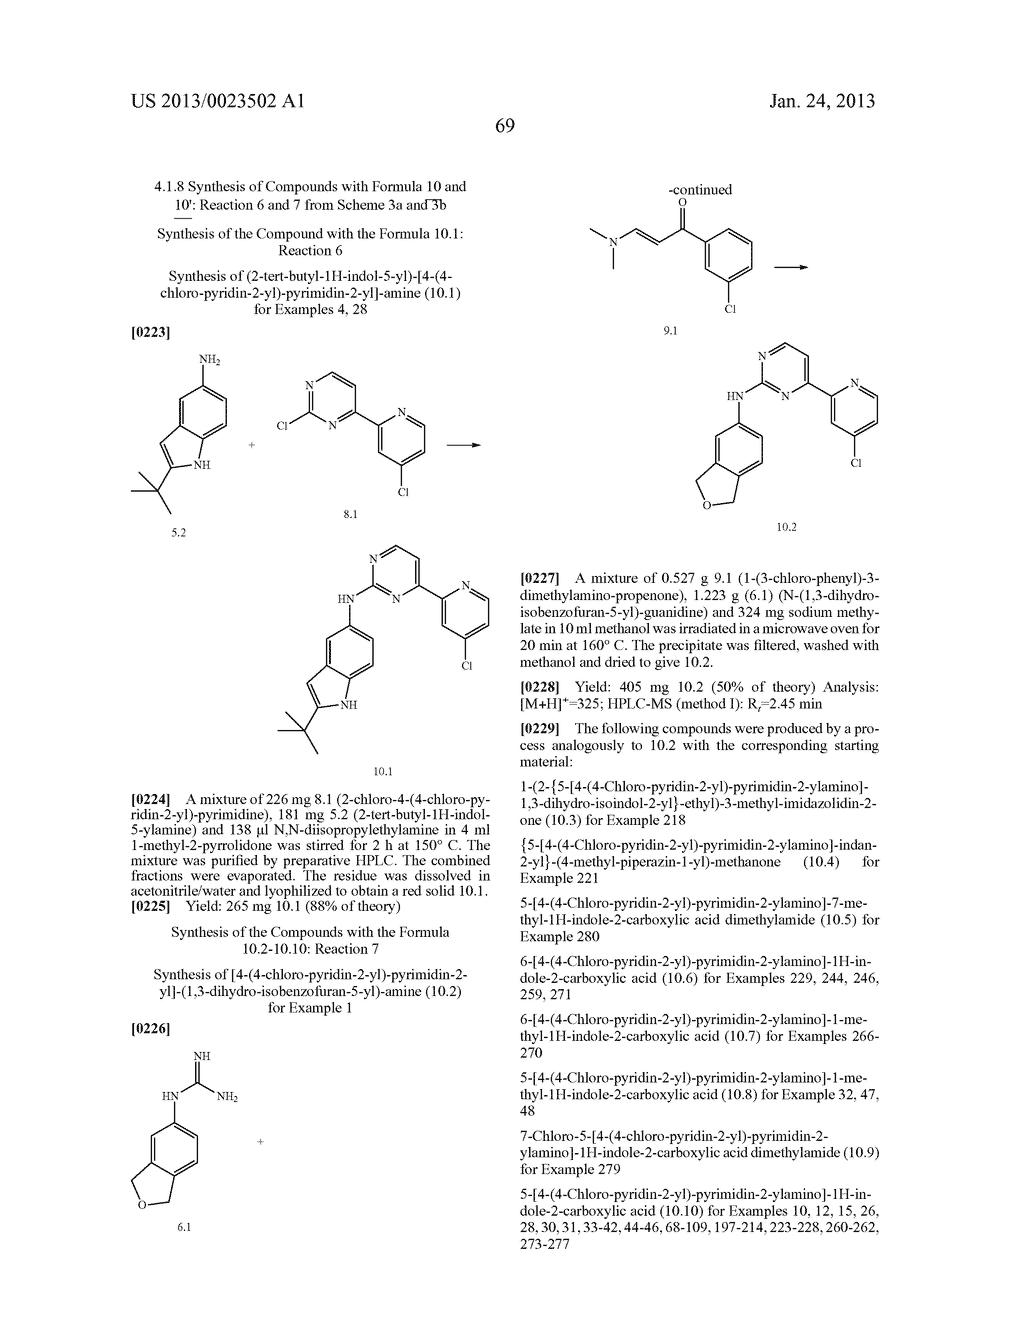 SUBSTITUTED PYRIDINYL-PYRIMIDINES AND THEIR USE AS MEDICAMENTS - diagram, schematic, and image 70